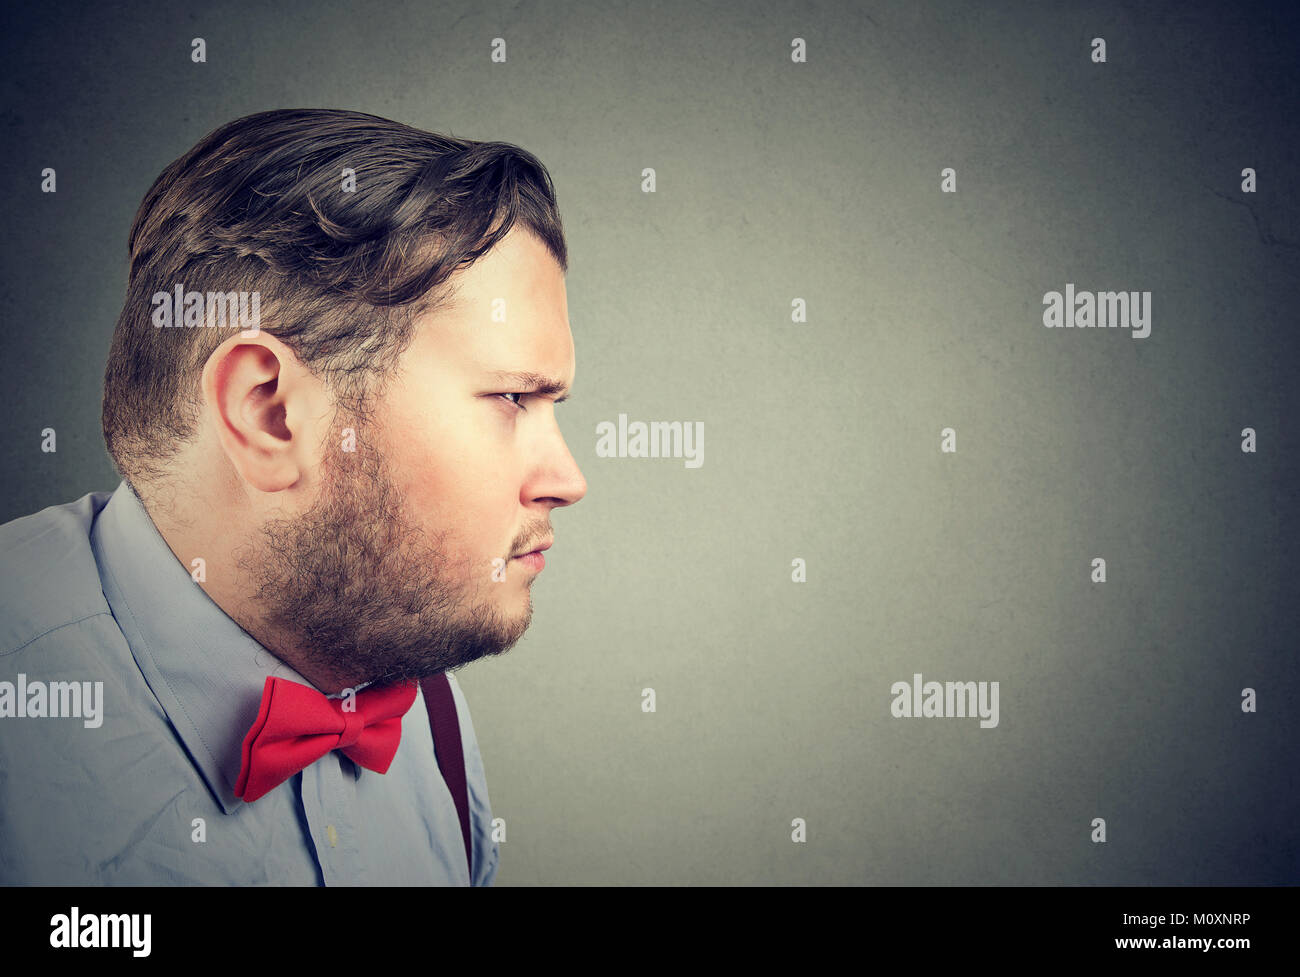 Chunky formal man looking away seriously with angry expression. - Stock Image